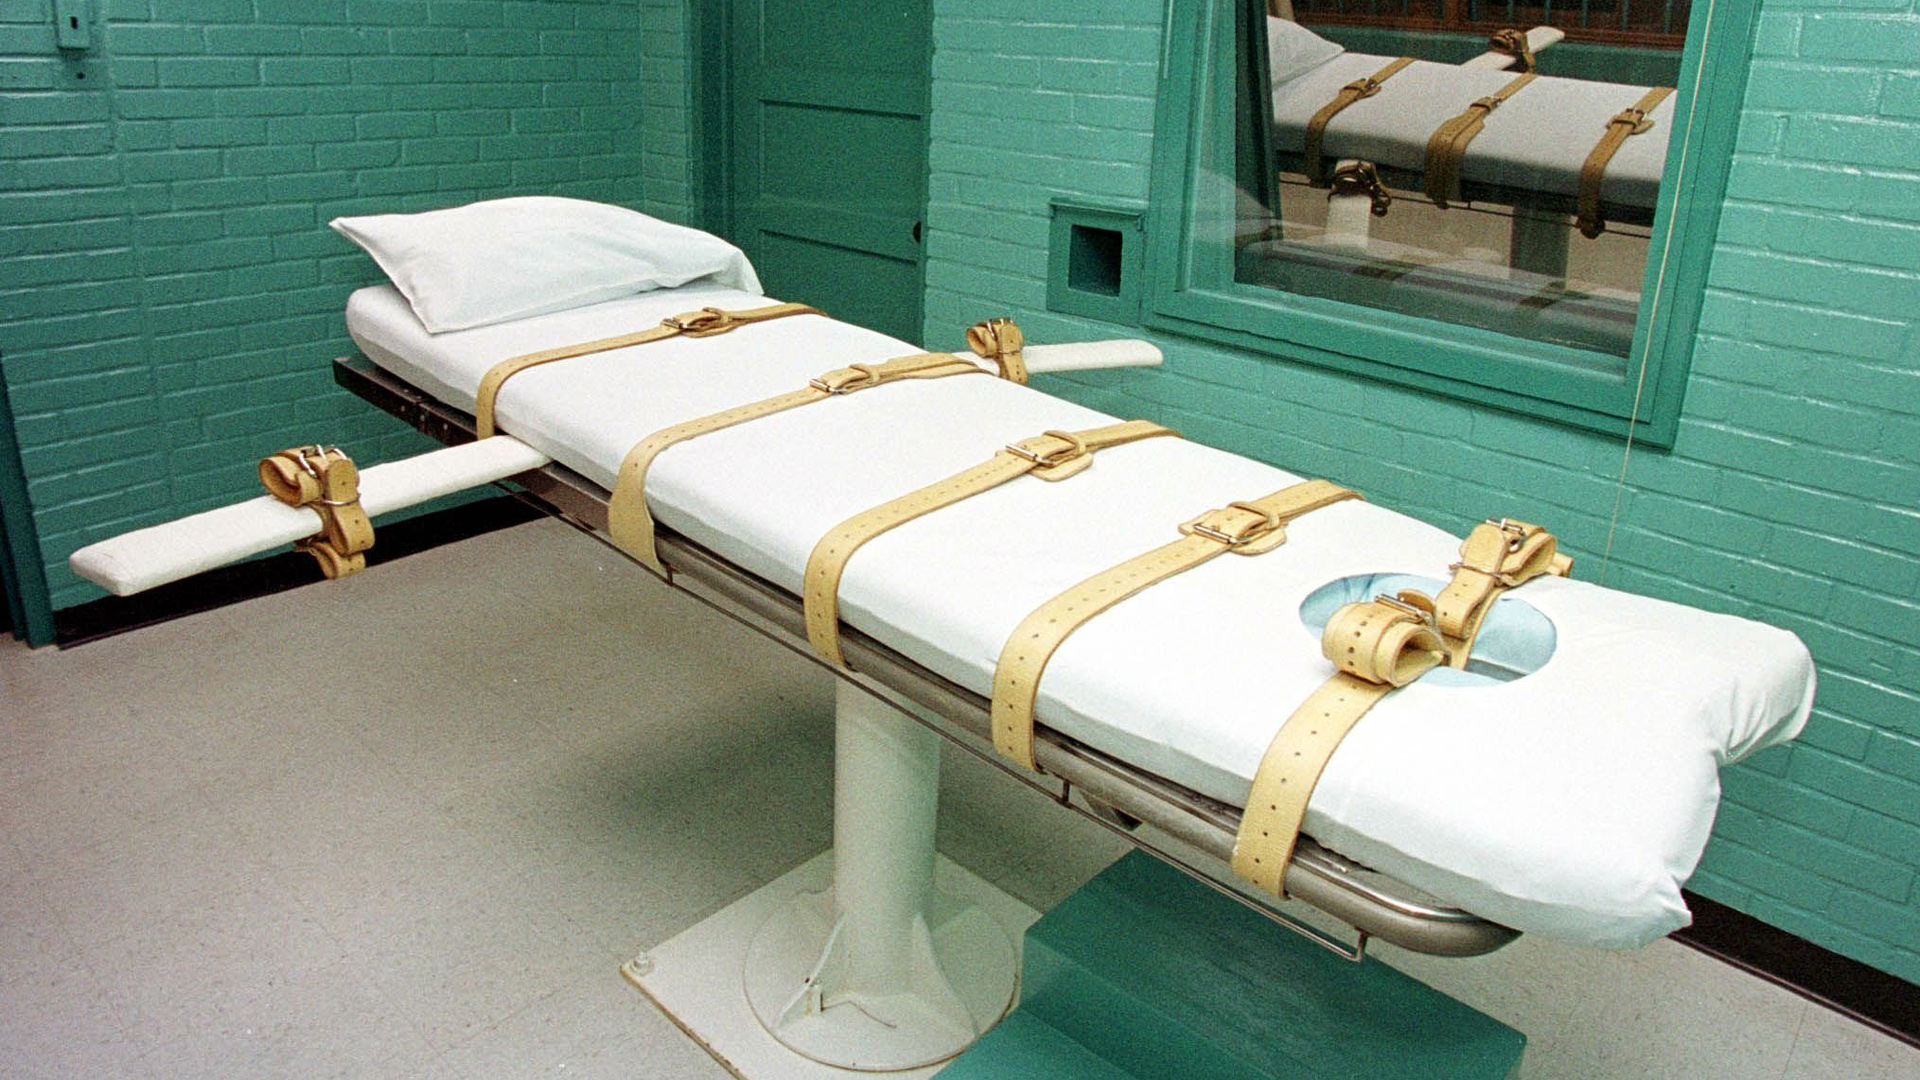 Nebraska carried out its first execution using lethal injection in state history on Aug. 14, 2018. (Credit: Paul Buck/AFP/Getty Images)